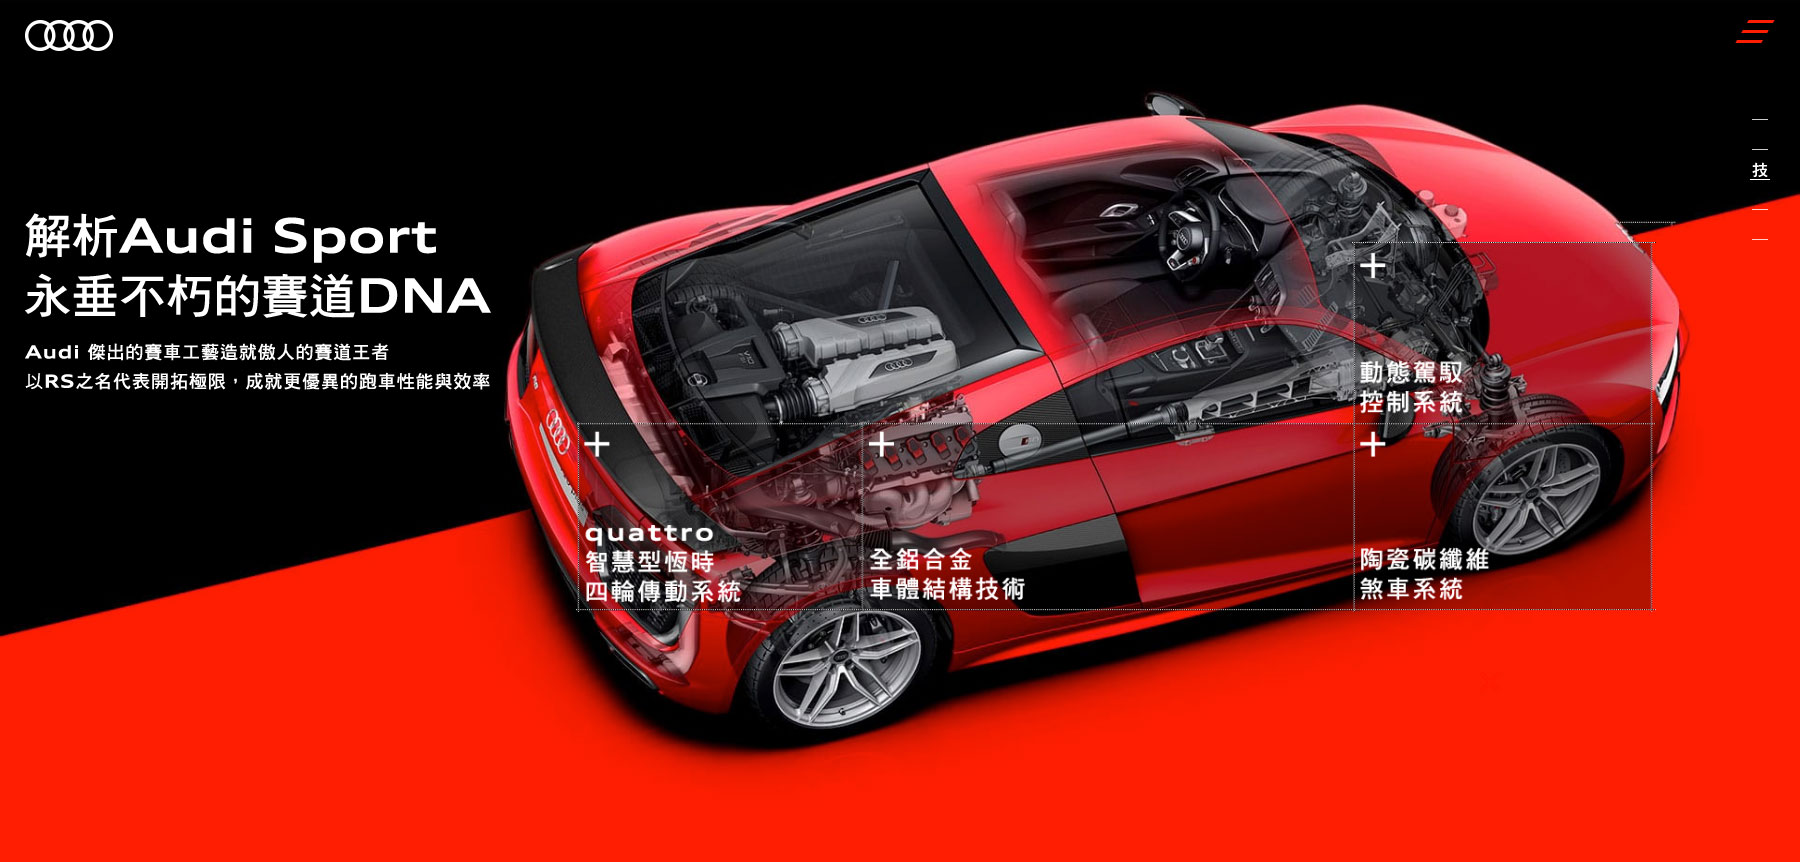 Audi Sport - Audi Taiwan - Website of the Day